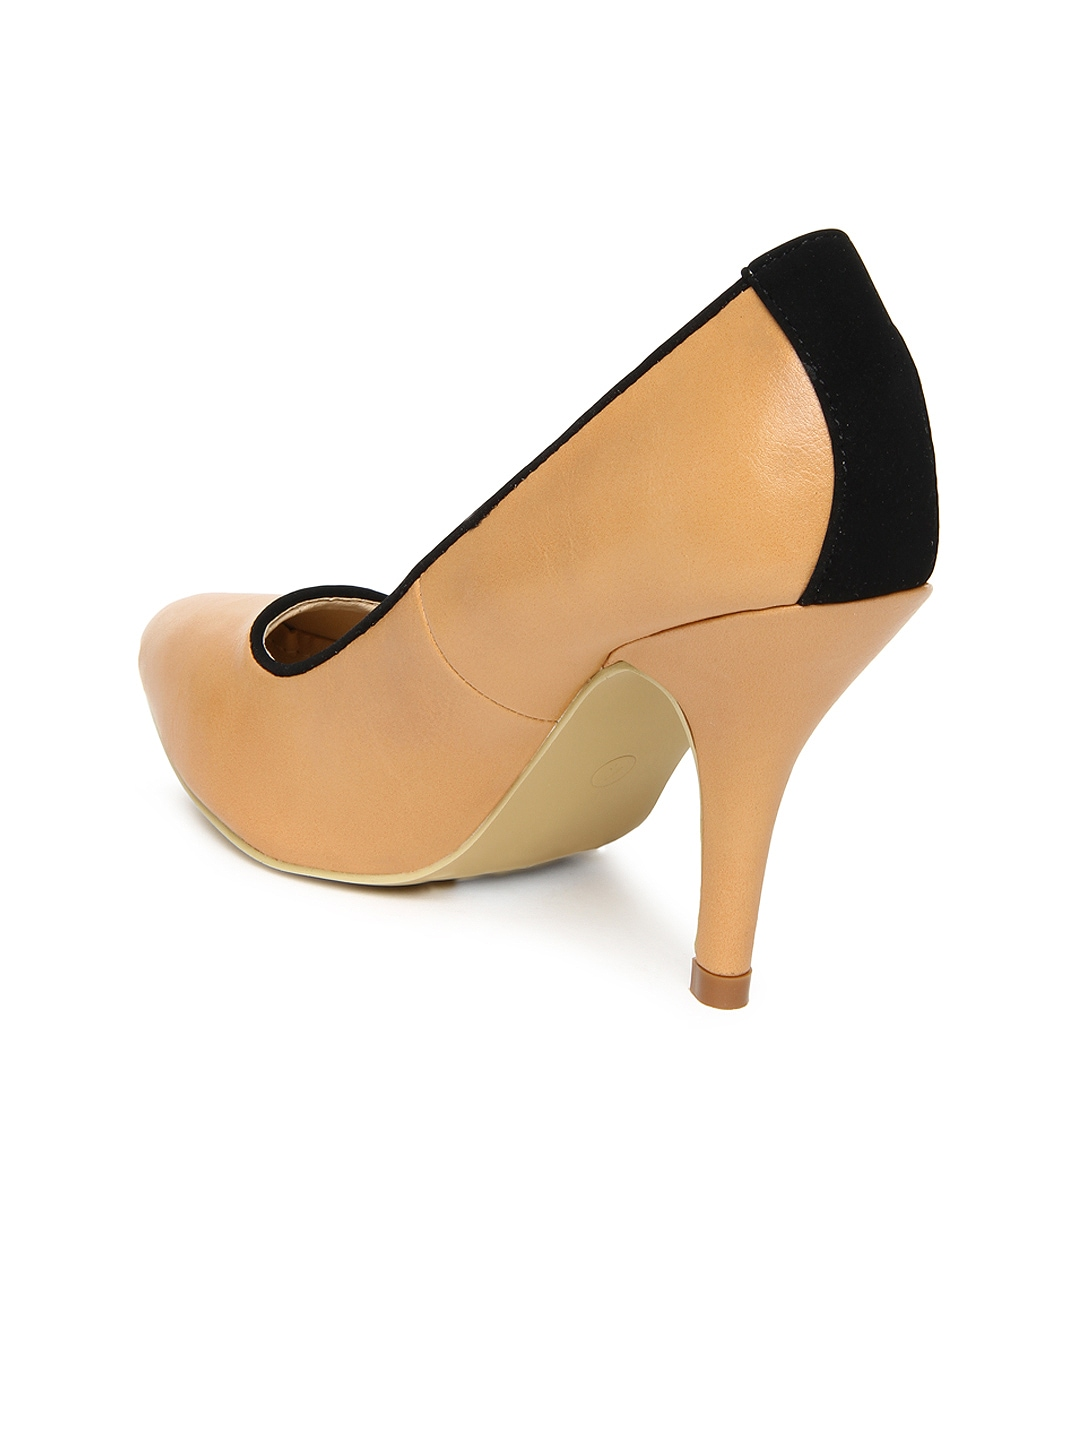 9967bbc69 Buy Allen Solly Woman Brown Pumps 2907090 for women online in india on  Myntra at Yebhi.com